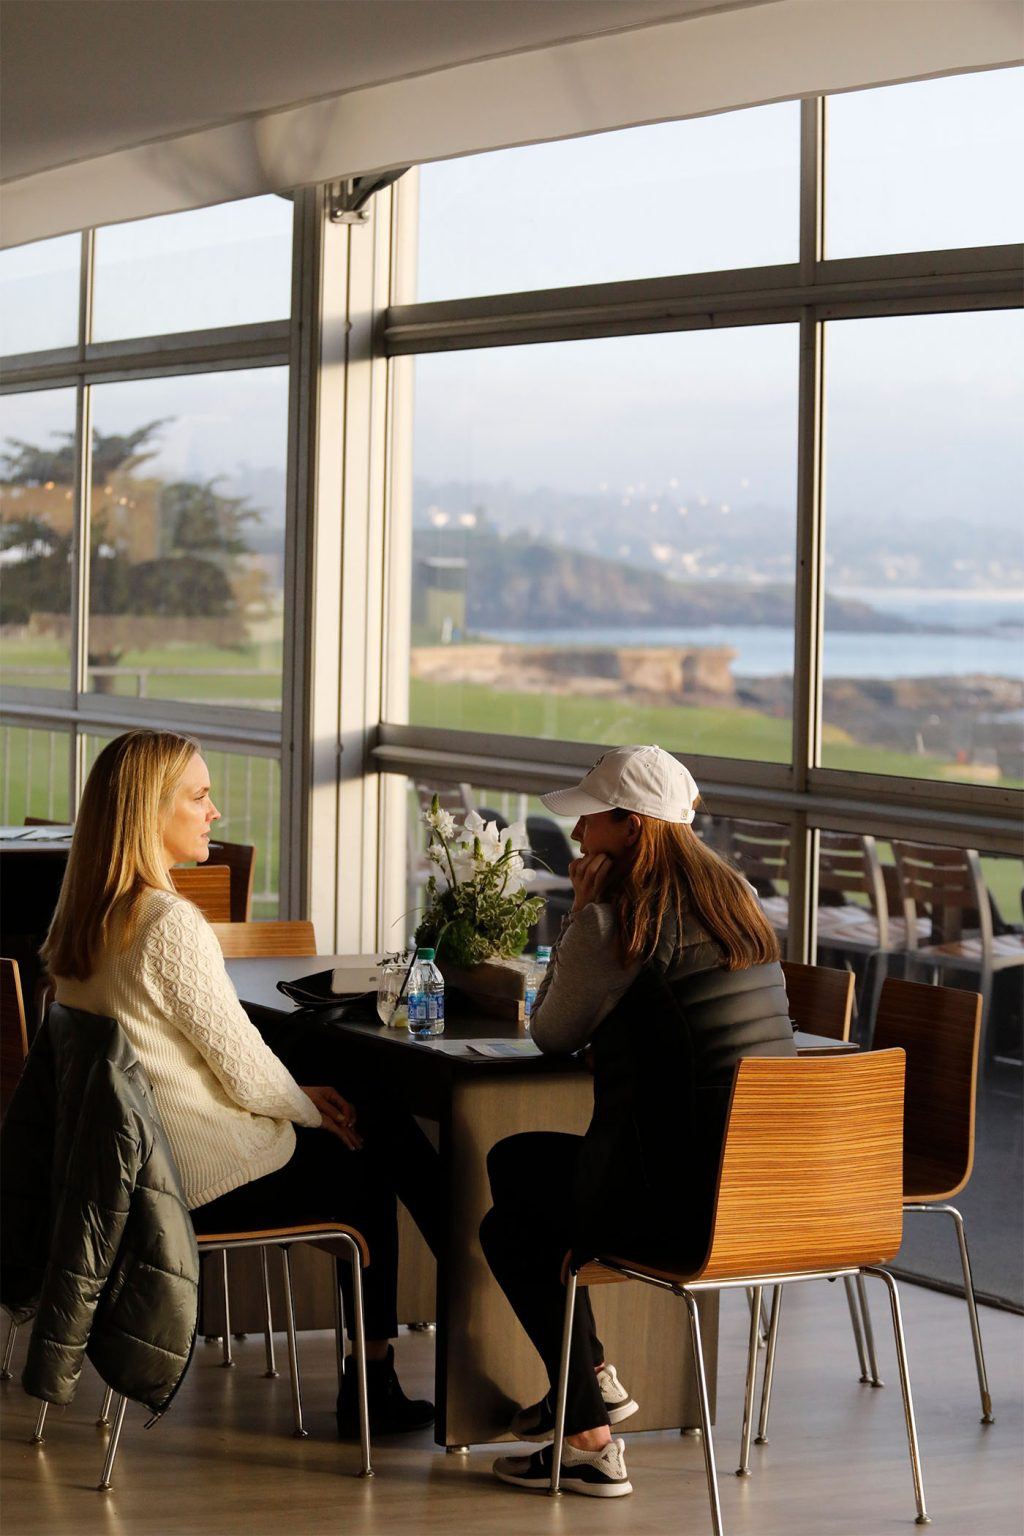 Spectators at the 2020 AT&T Pebble Beach Pro-Am